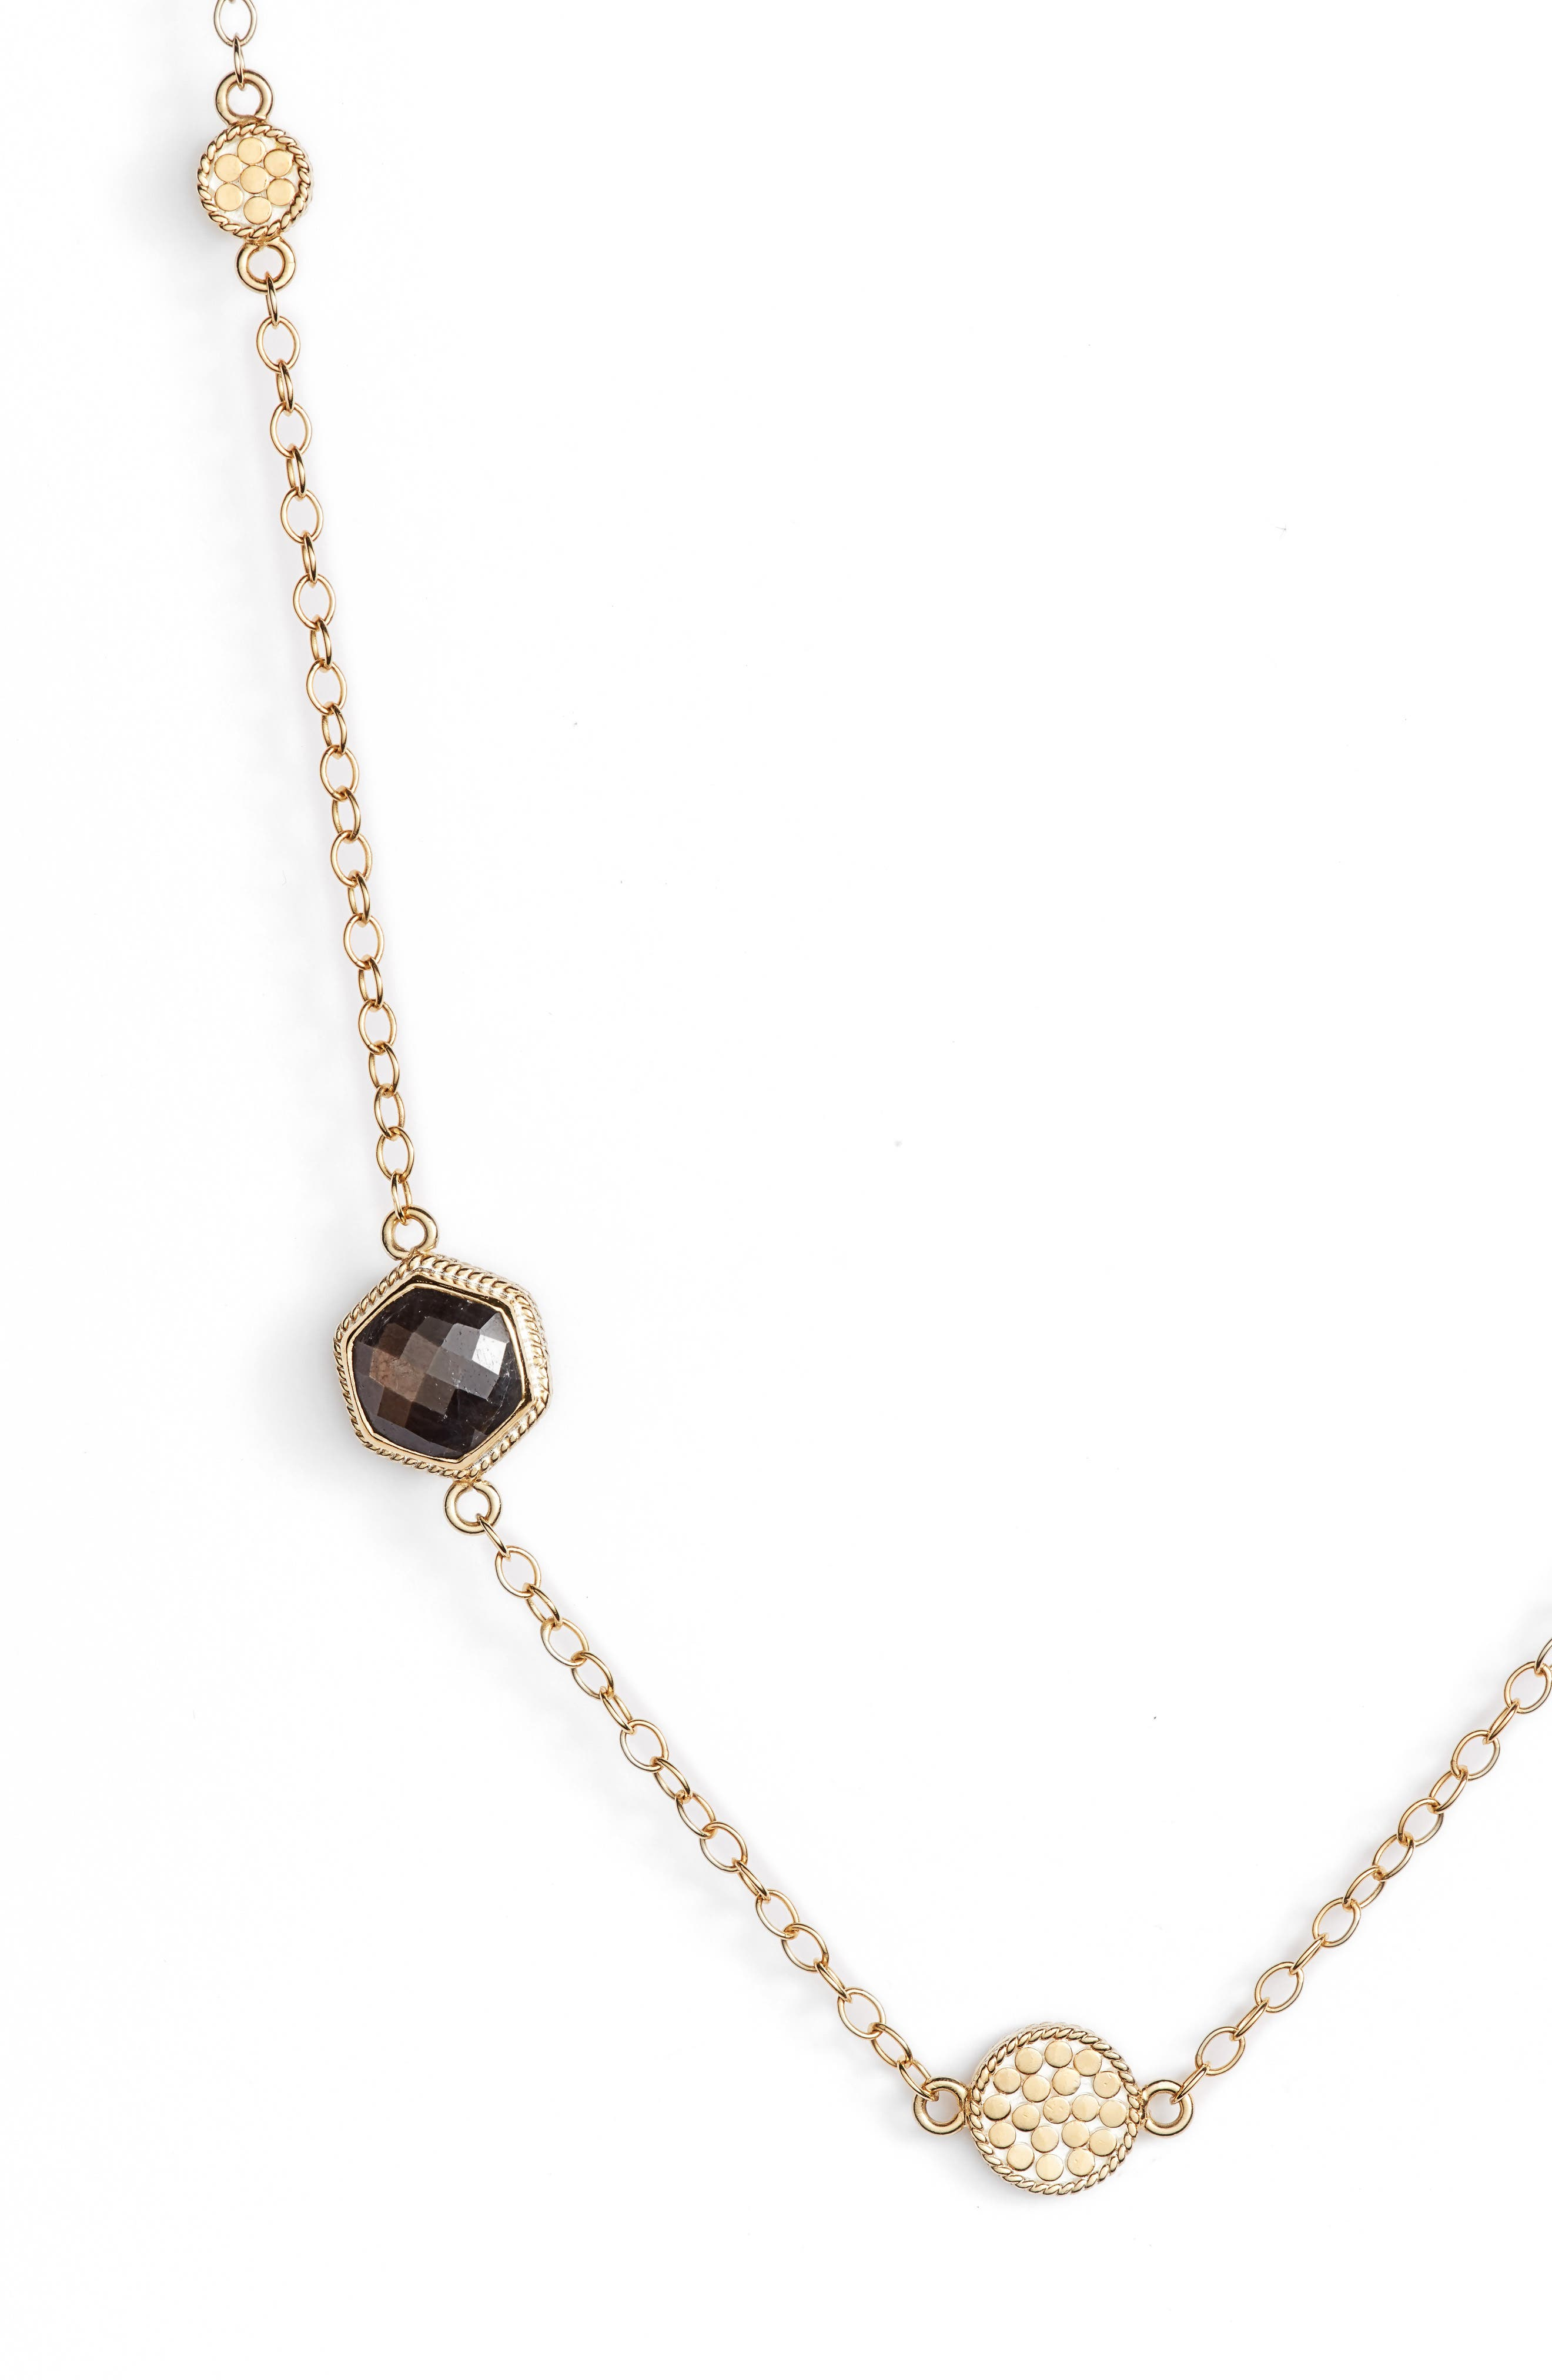 Grey Sapphire & Pyrite Long Station Necklace,                             Alternate thumbnail 2, color,                             Gold/ Silver/ Grey/ Pyrite